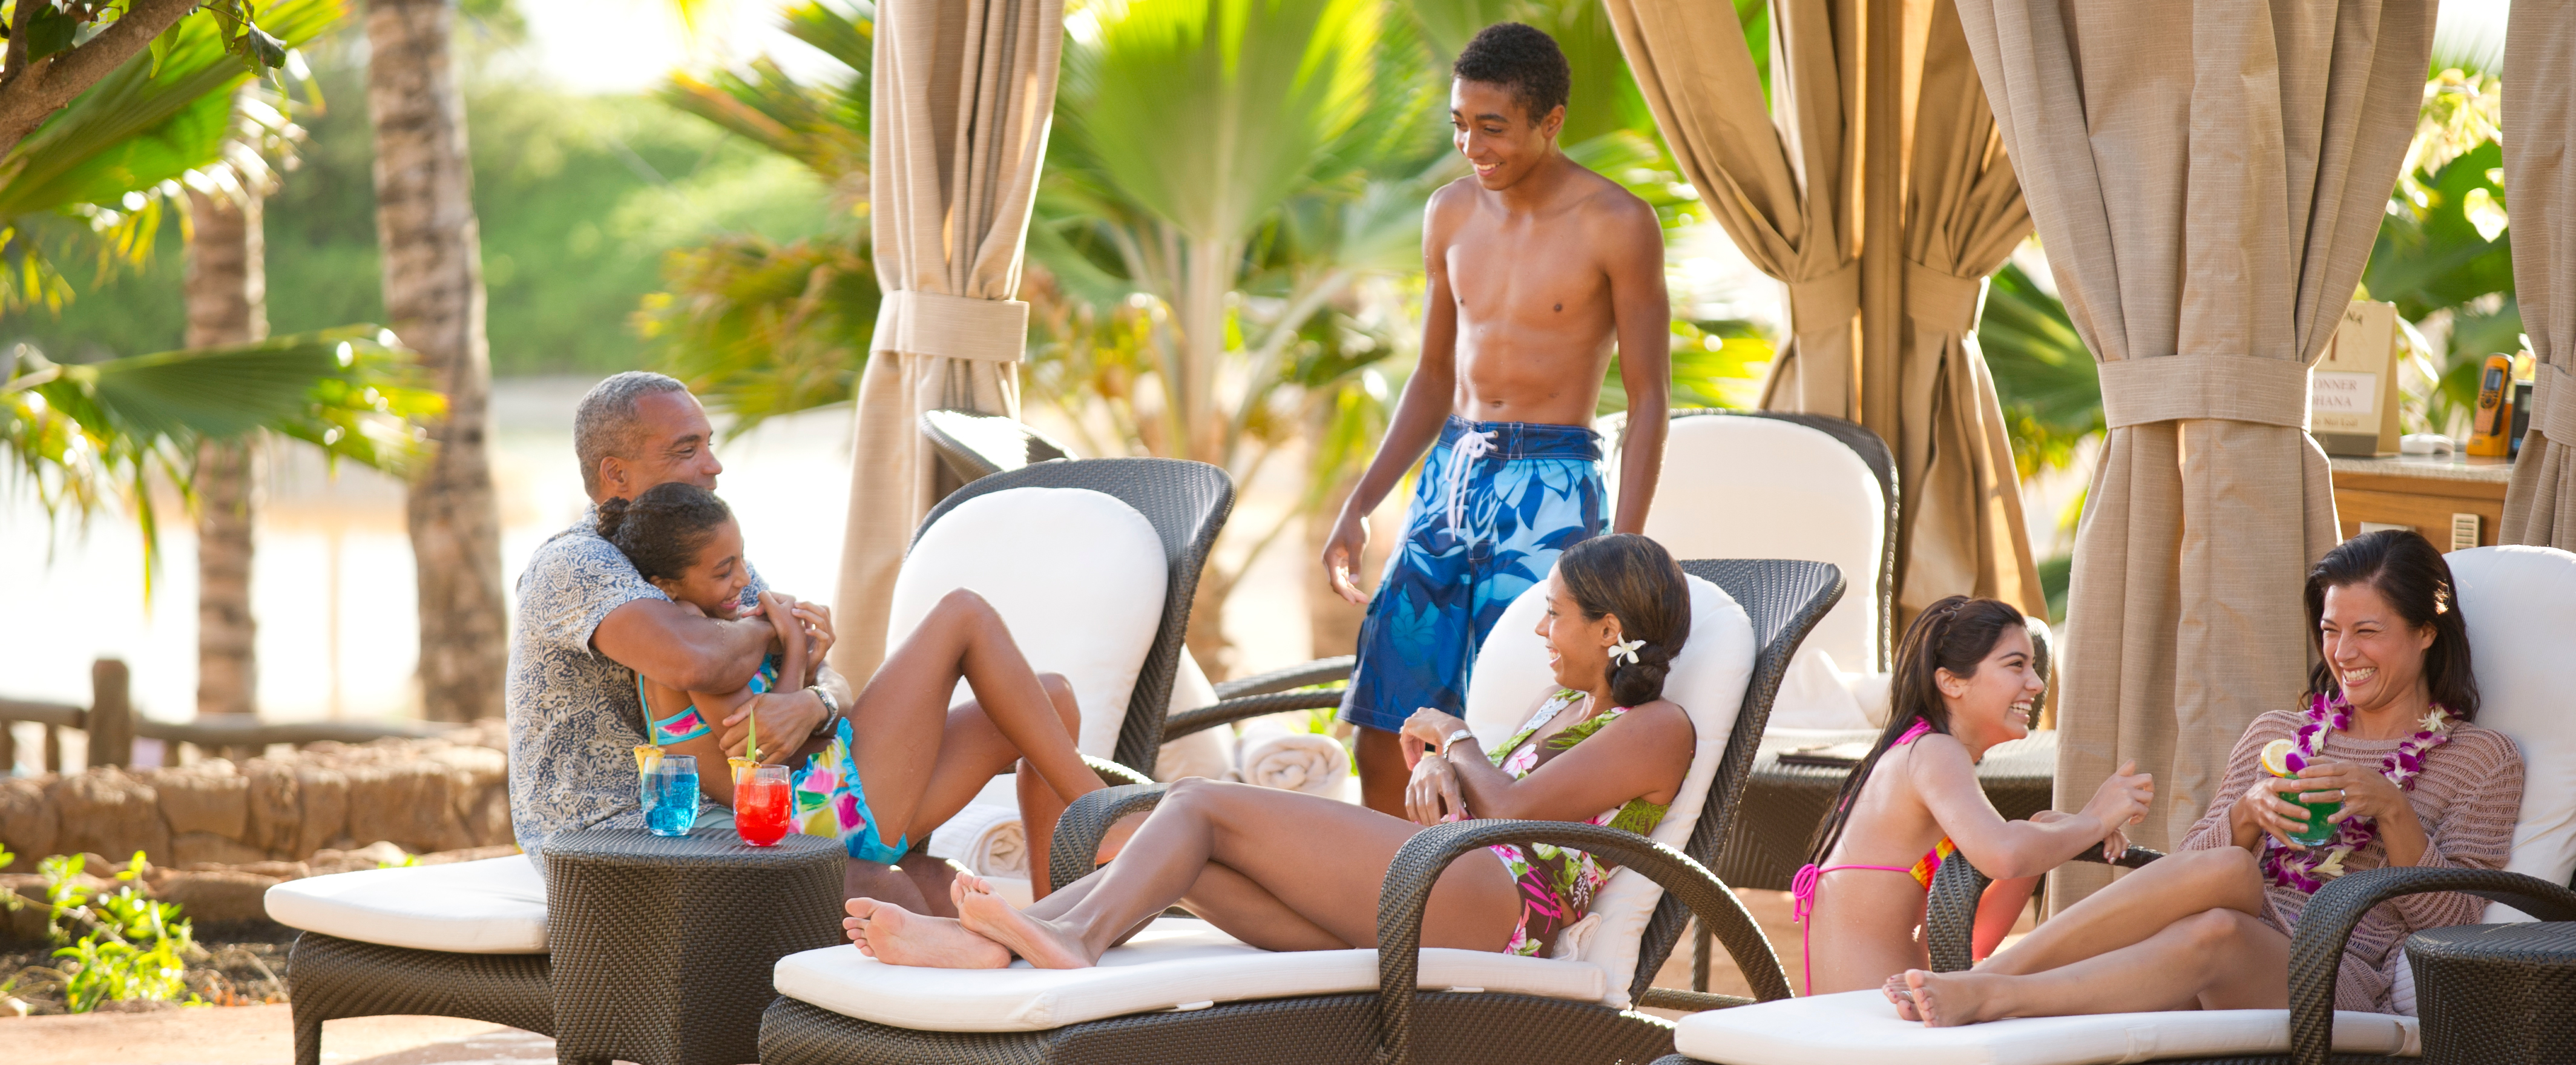 A family relaxes under a poolside cabana at Aulani